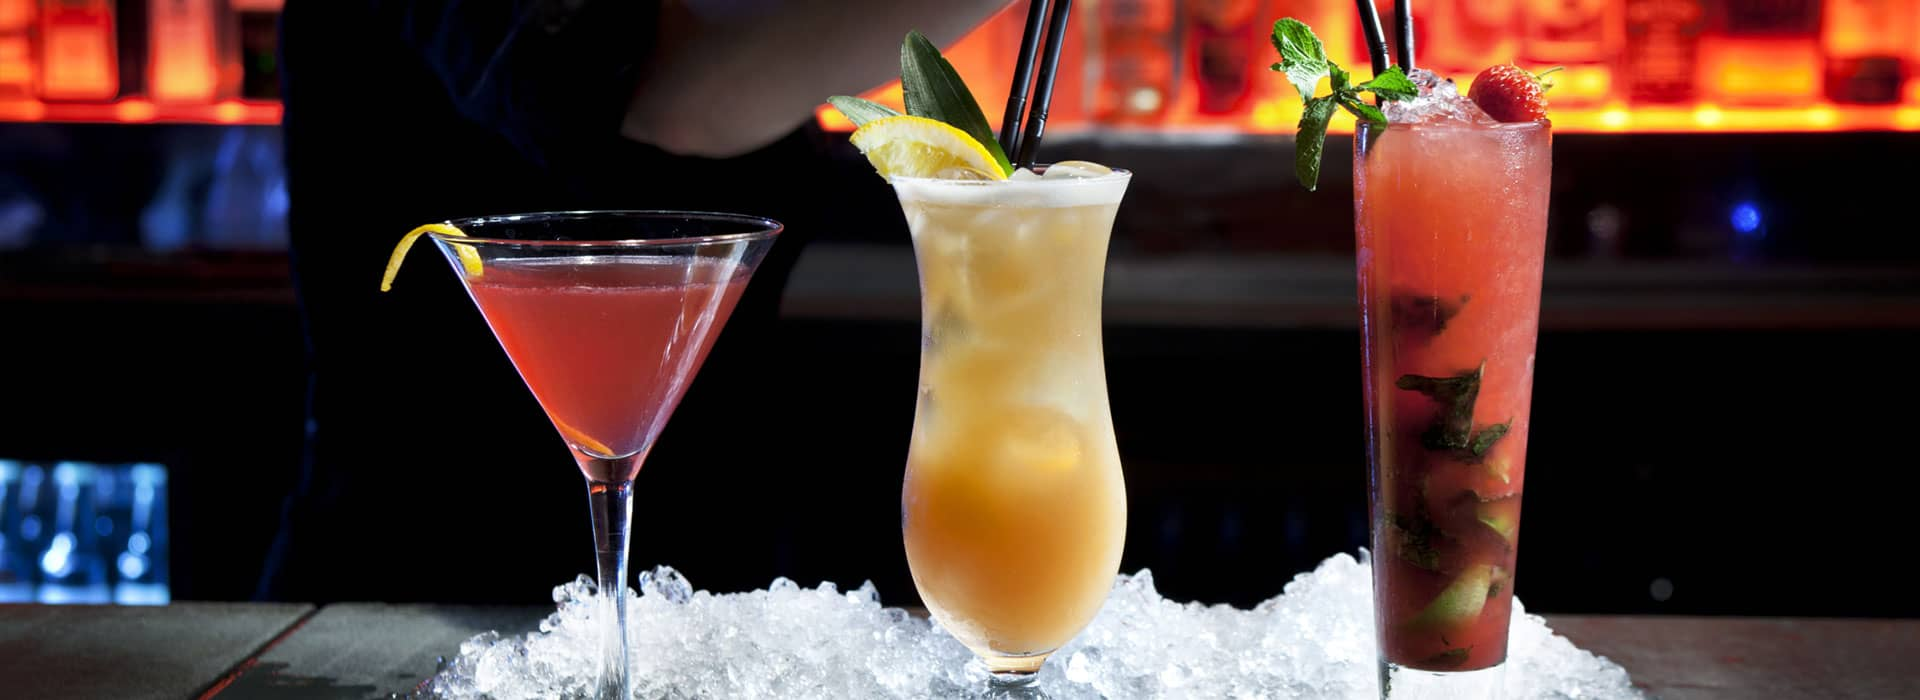 Beverage Catering, Beverage Event Planning and Wait Staff